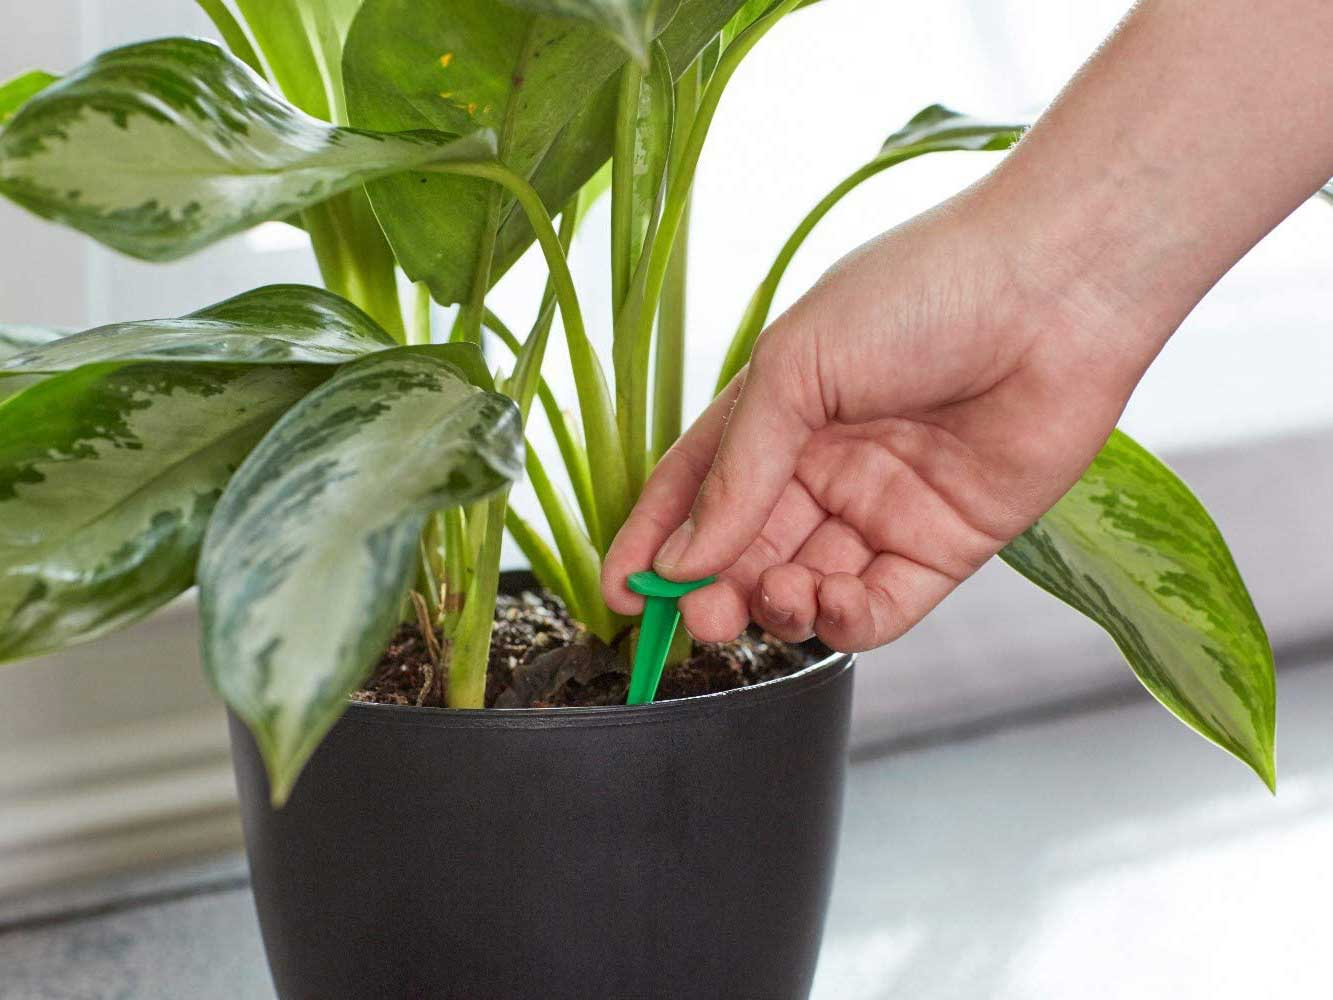 Plant food spike put in plant soil.